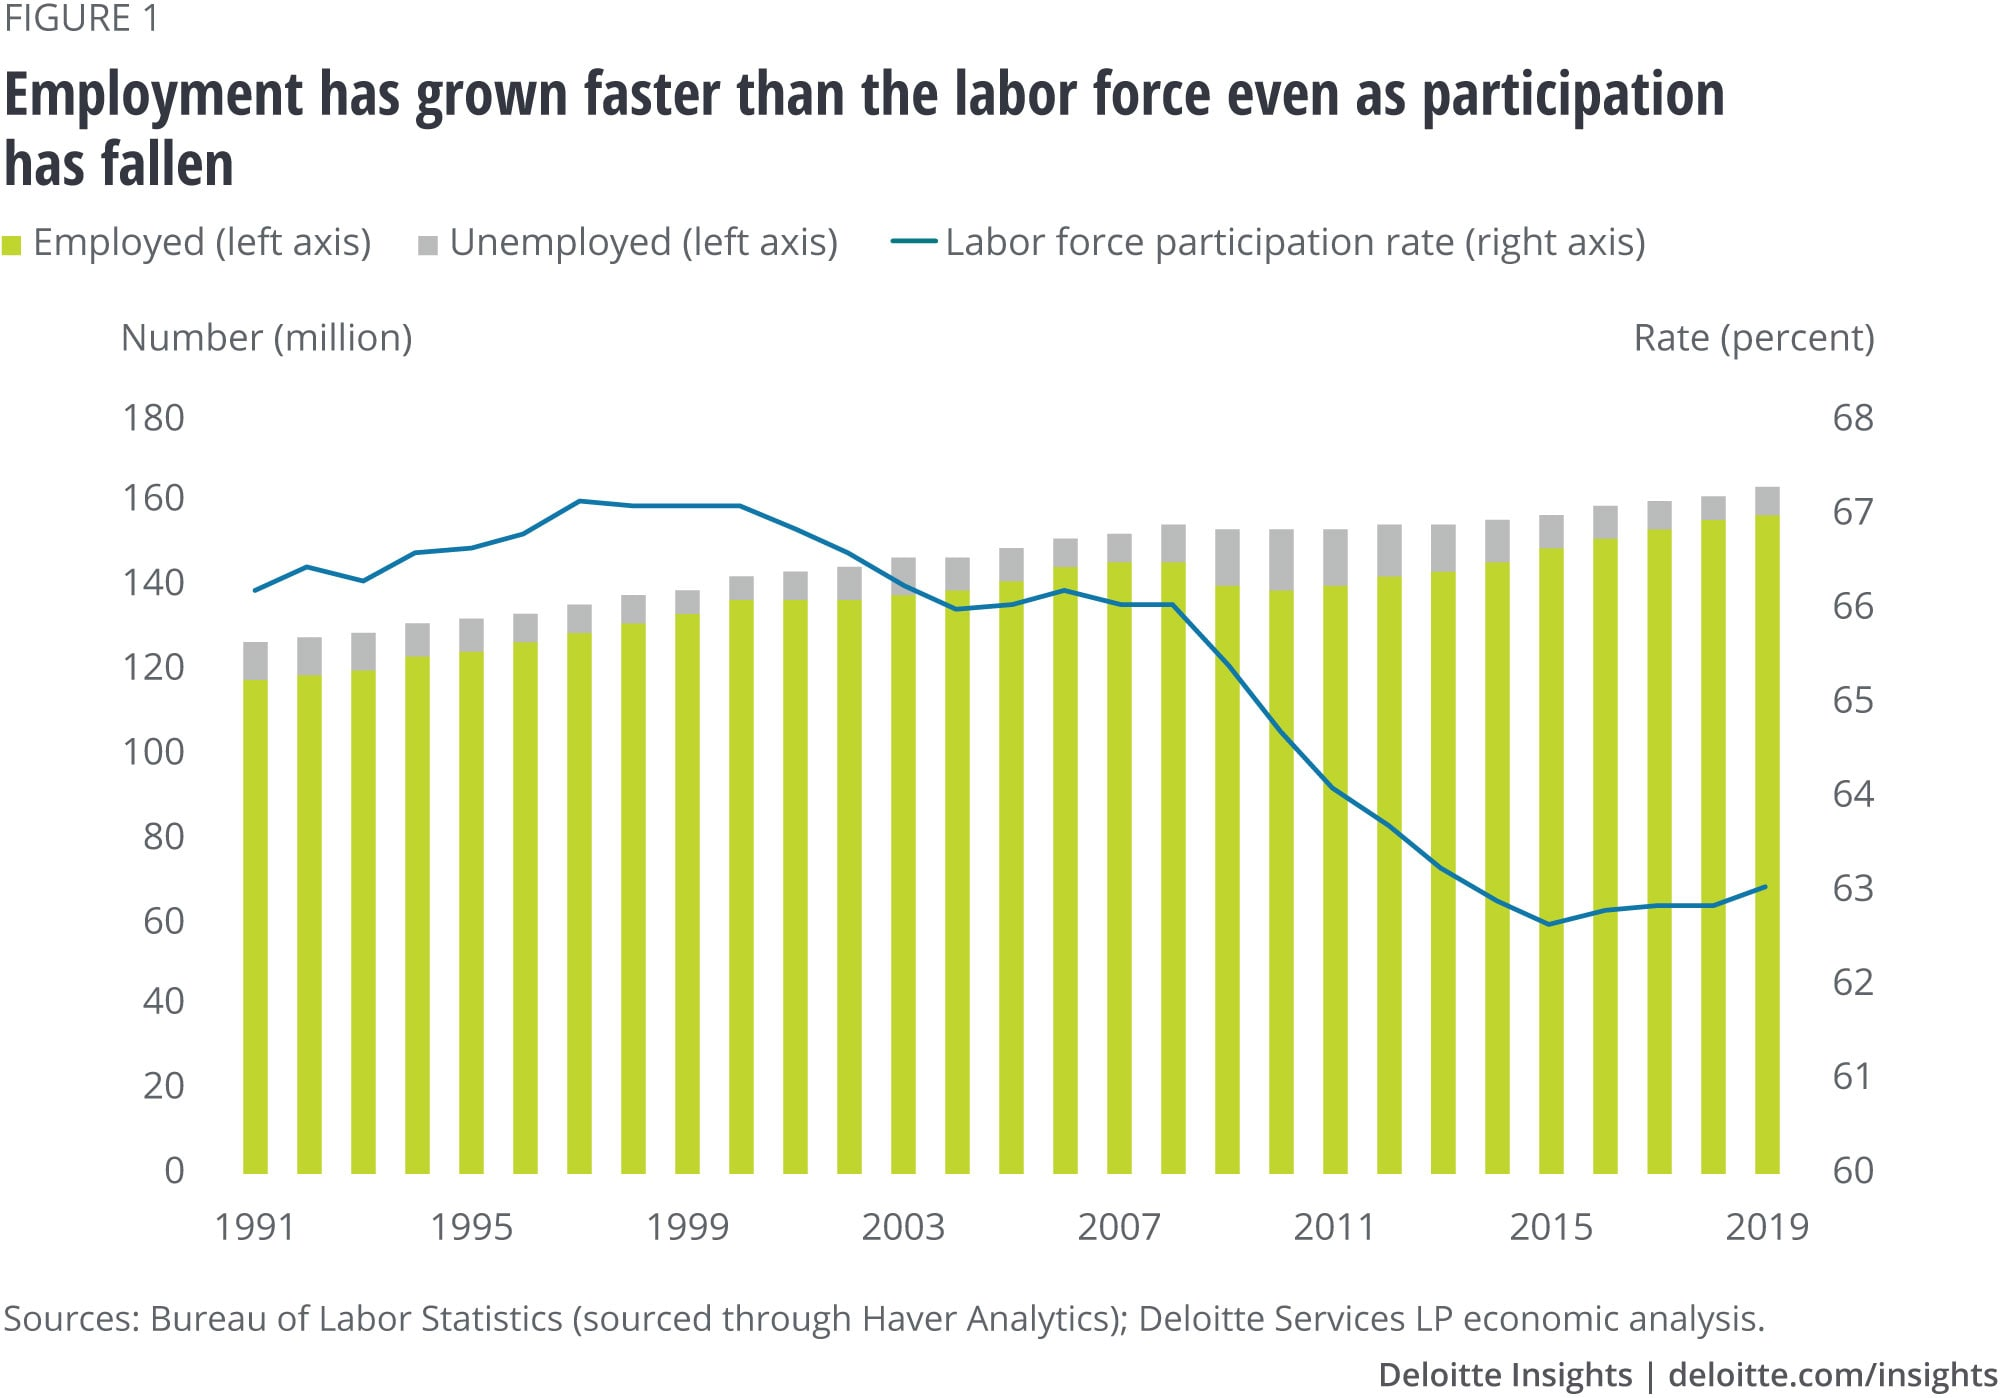 Employment has grown faster than the labor force even as participation has fallen